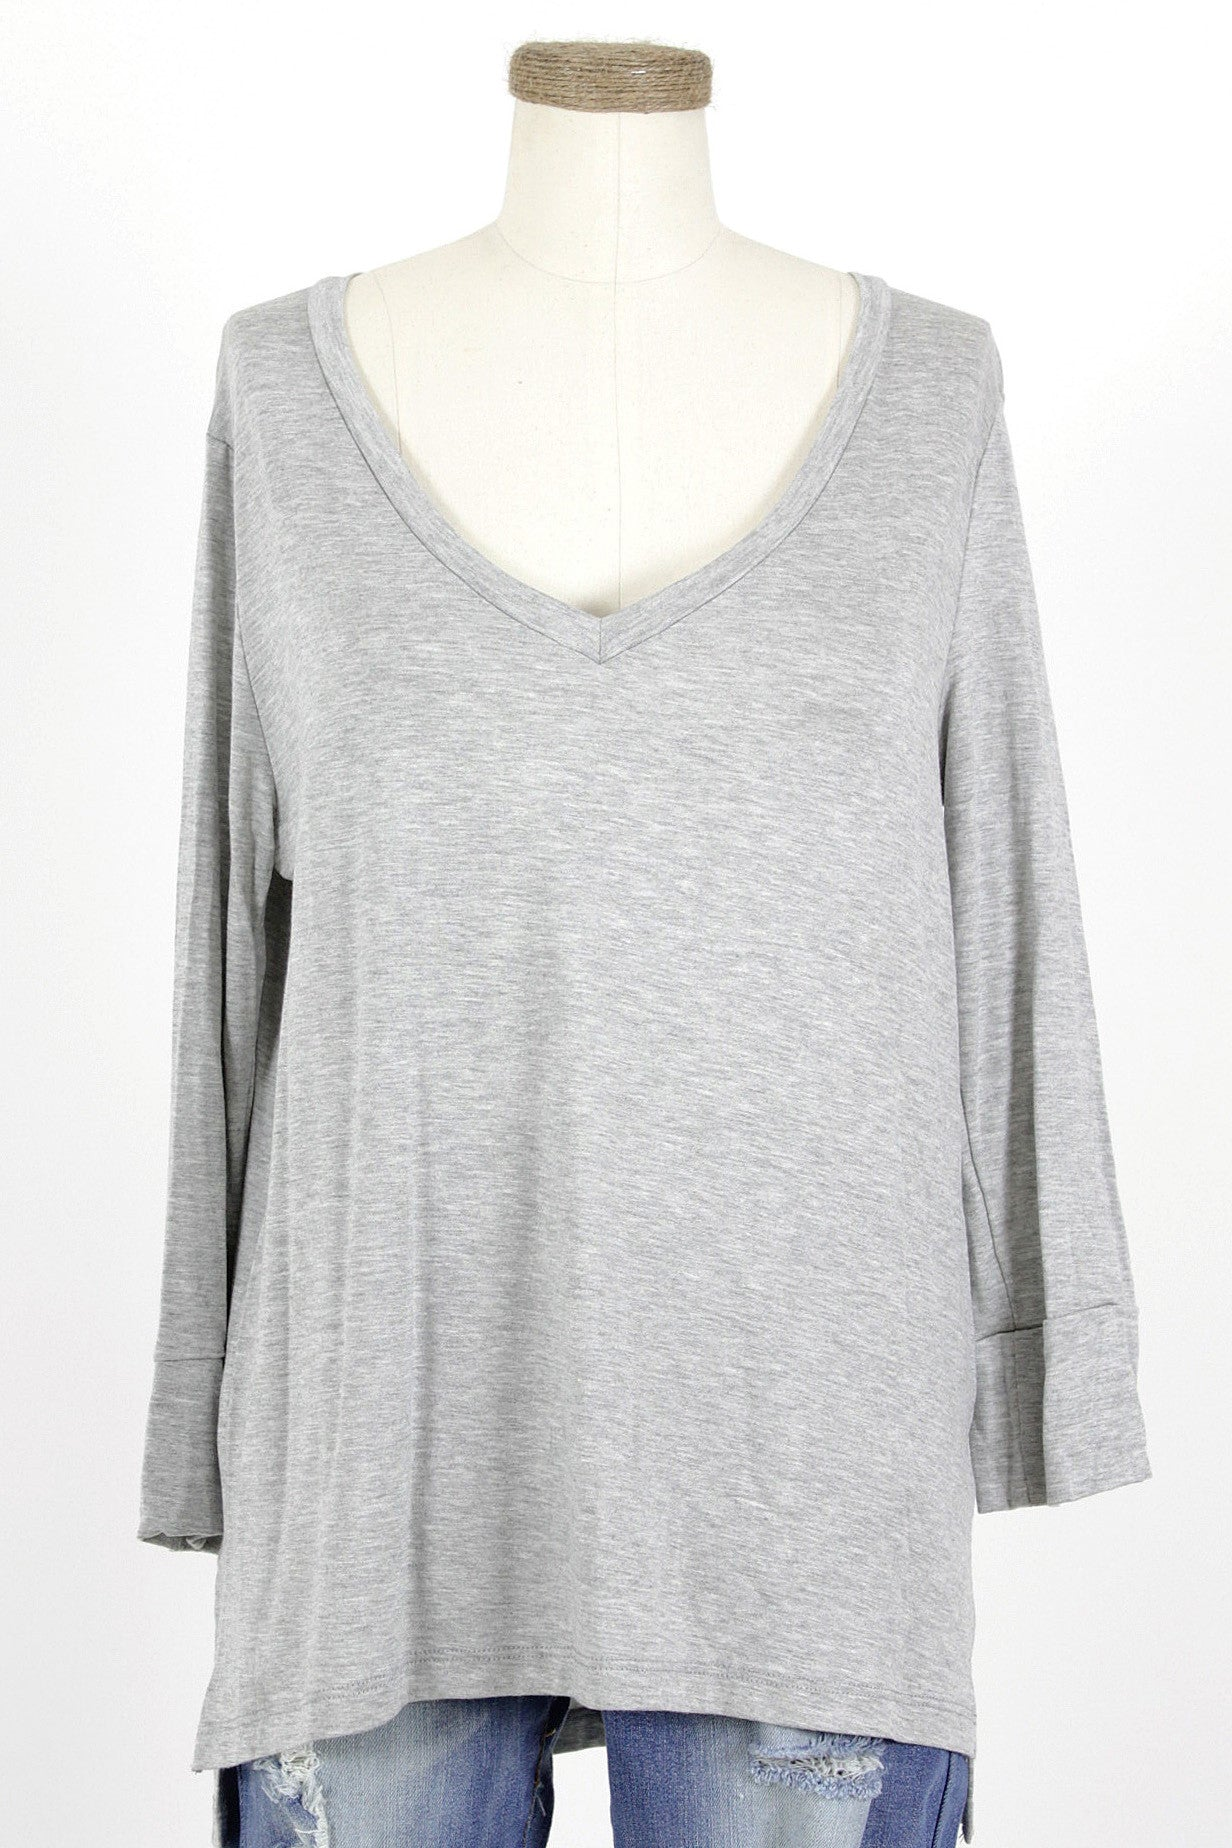 Modal 3/4 Sleeve V-Neck Top / Heather Grey